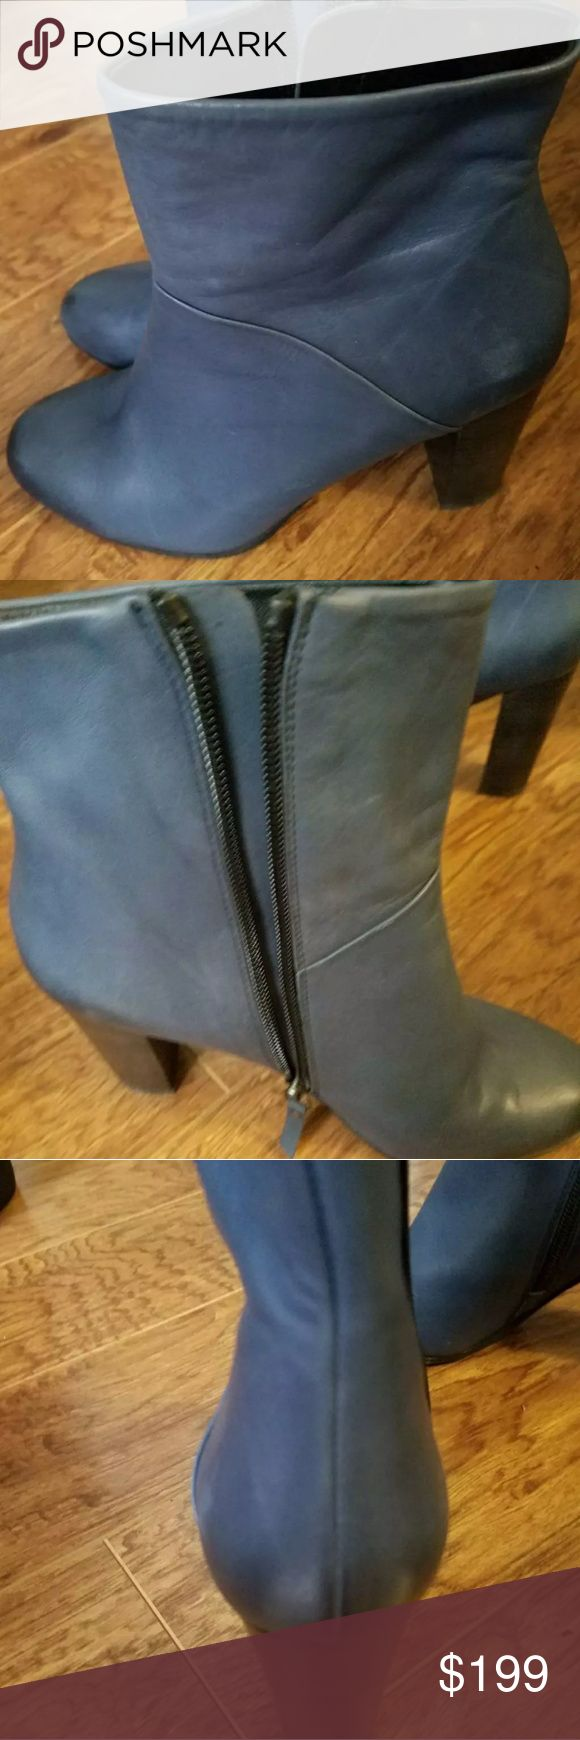 NDC made in Spain booties Baby soft leather, zip up sides n.d.c. Shoes Ankle Boots & Booties